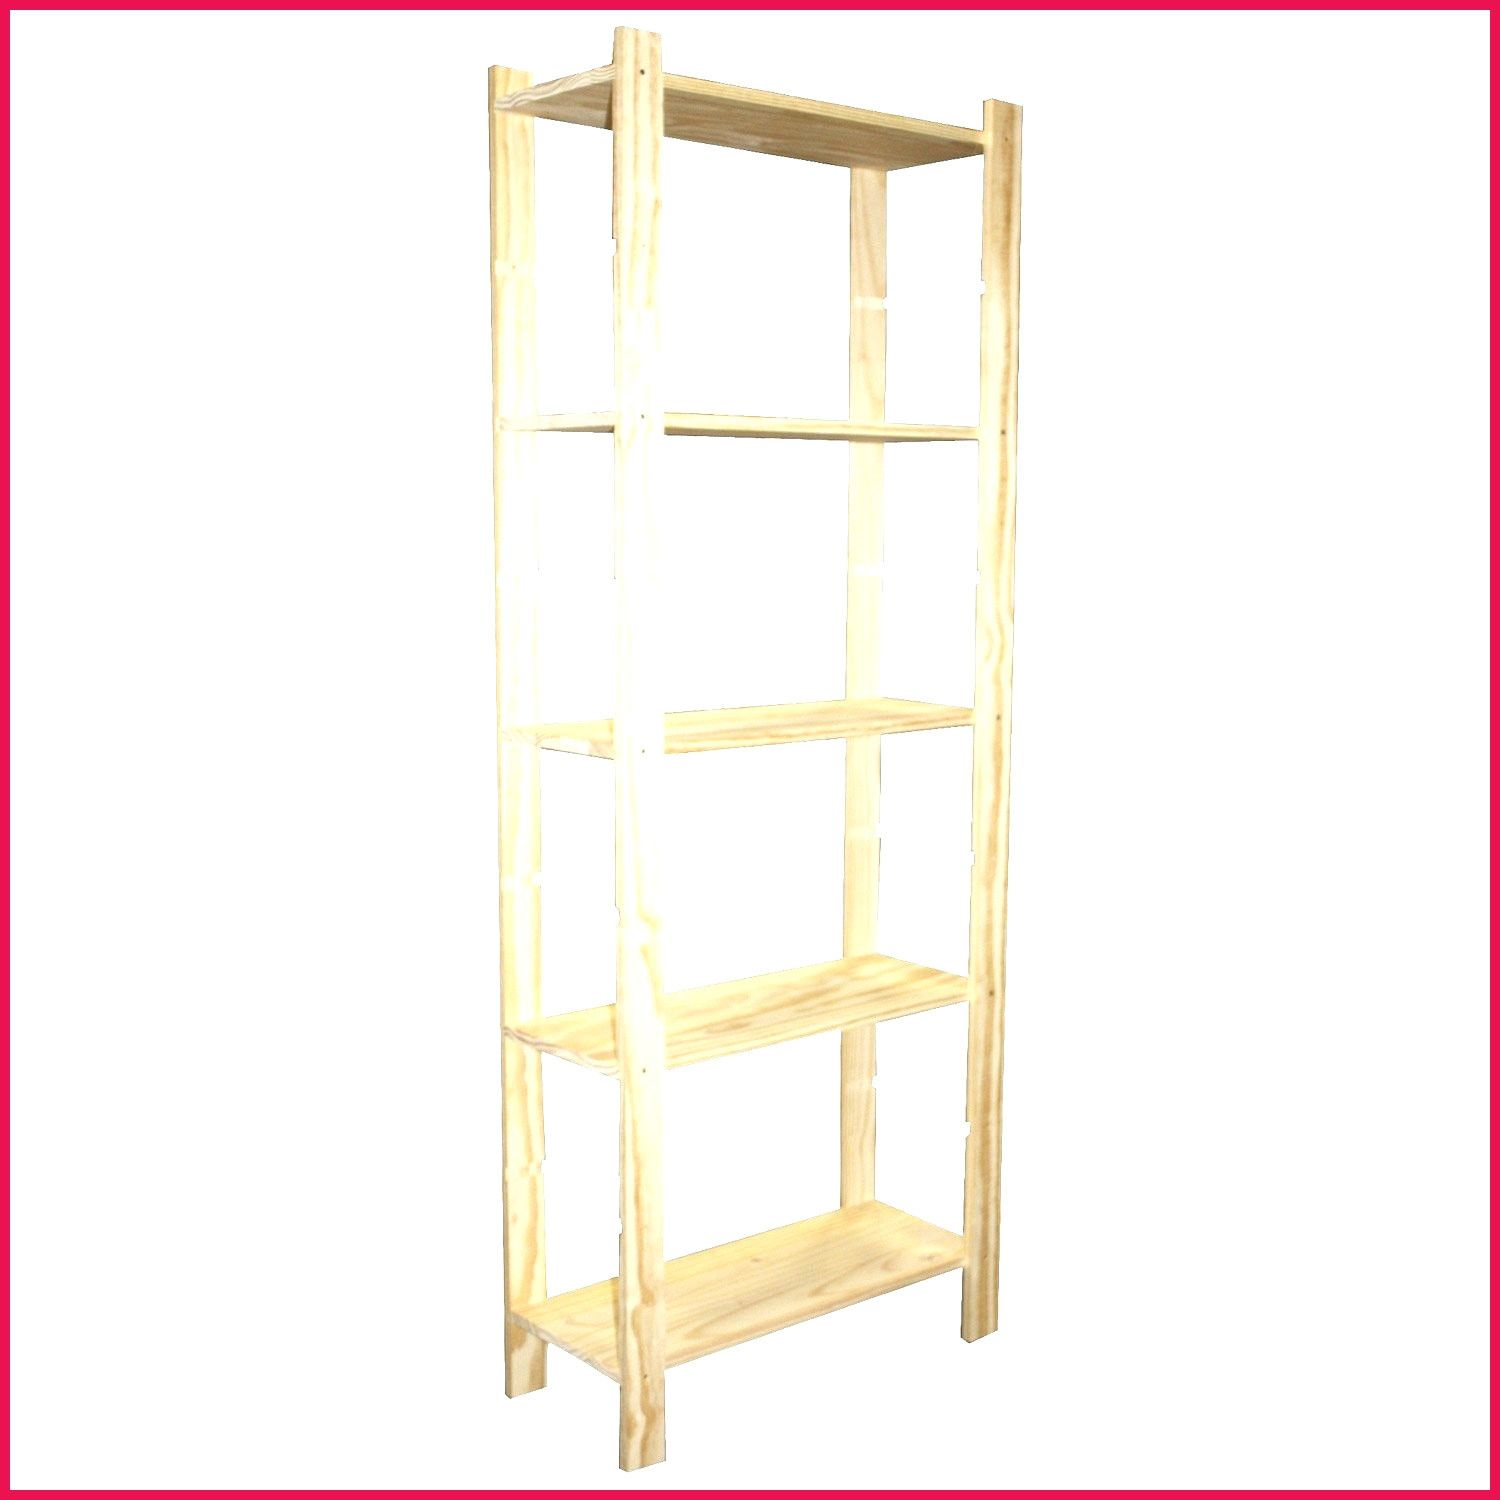 30 Unique Etagere Charge Lourde Castorama Recommandations Etagere Charge Lourde Decoration Etageres Etagere Plastique